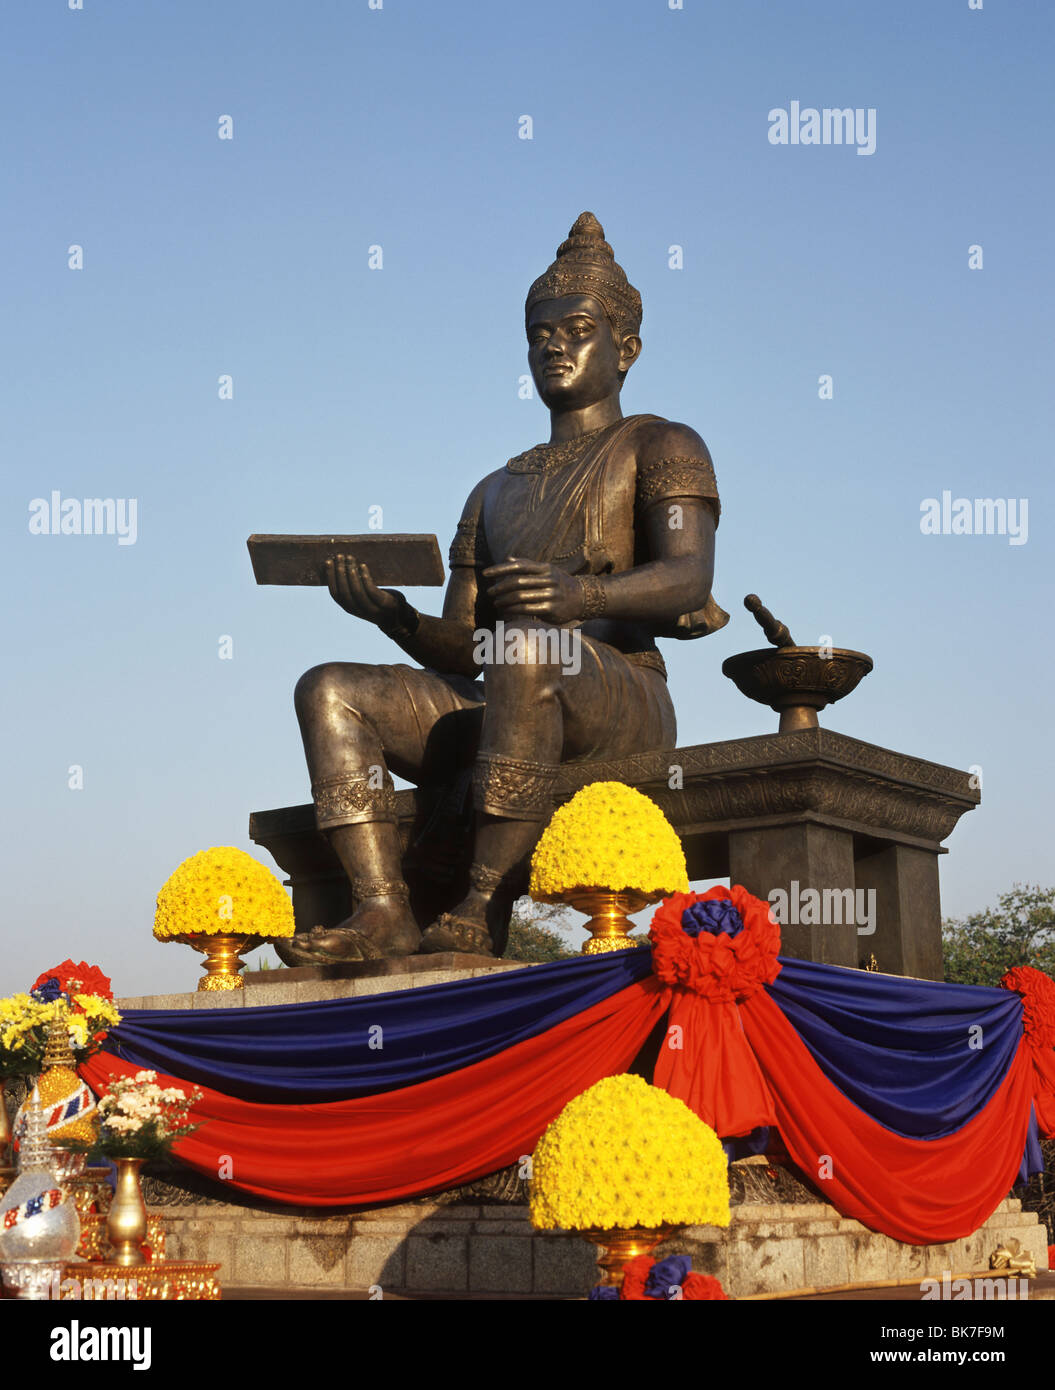 Contemporary statue to commemorate King Ramkamheng, the founder of the first Thai Kingdom, at Sukhothai, Thailand - Stock Image